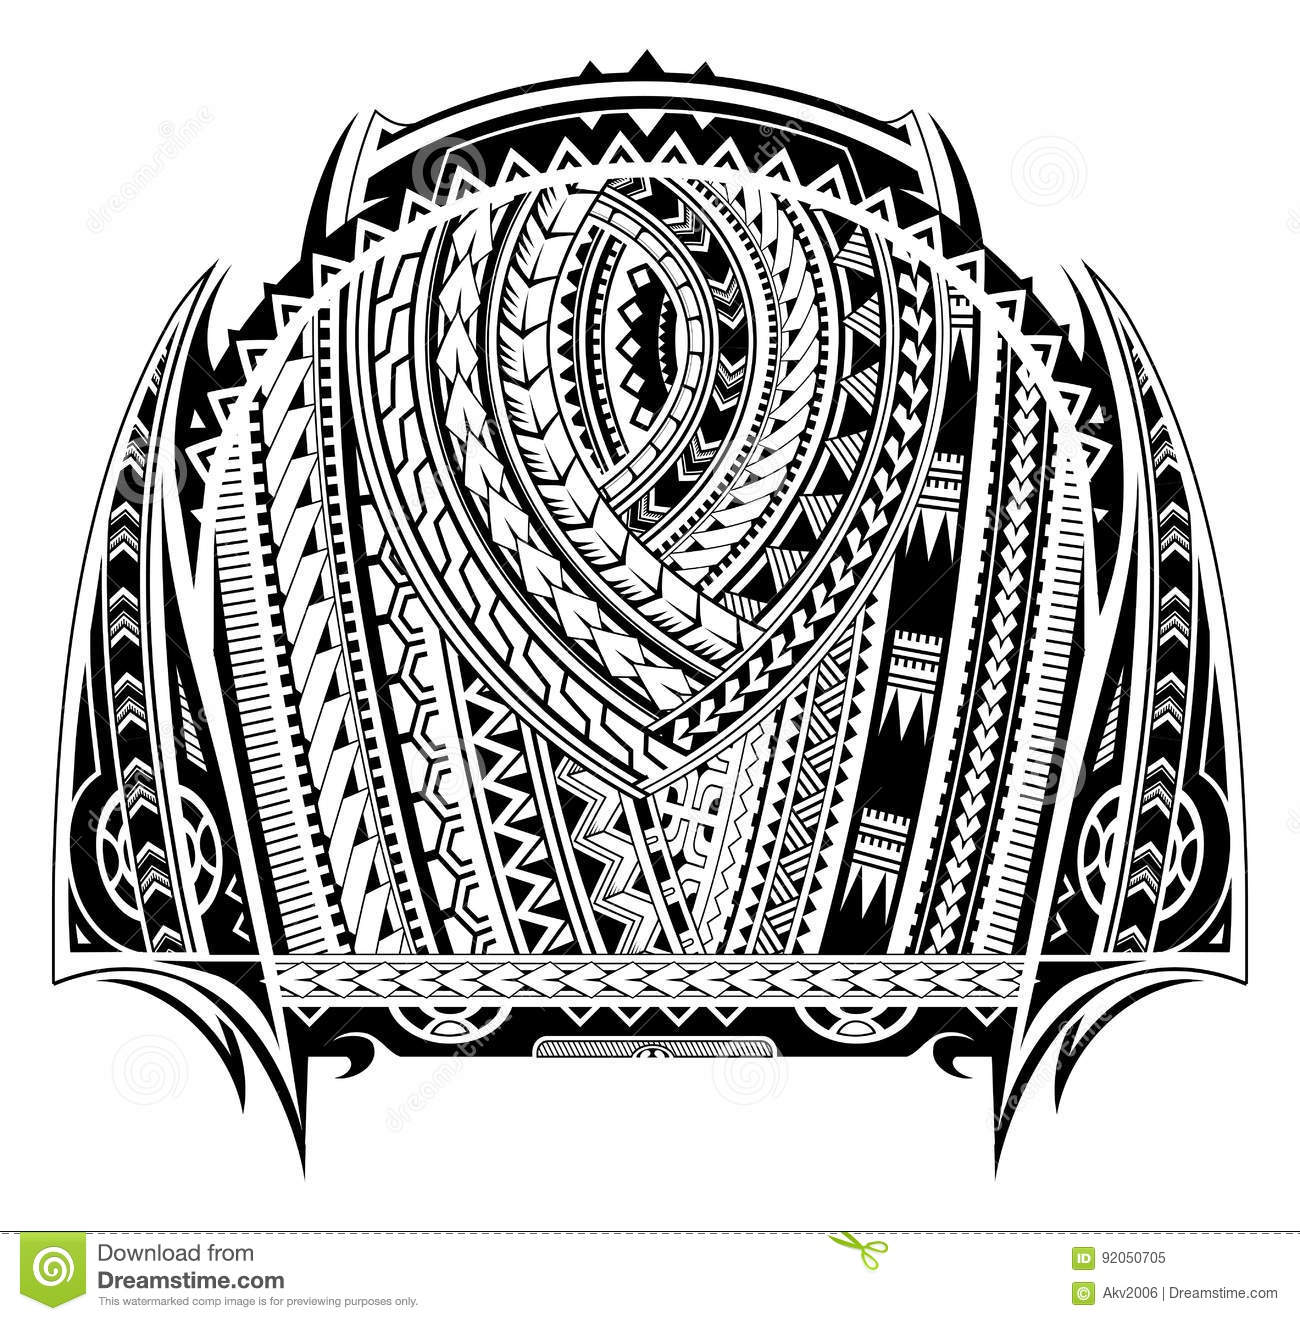 f69a95cdca3b8 Maori style tattoo. Good for chest and sleeve tattoo. Designers ...